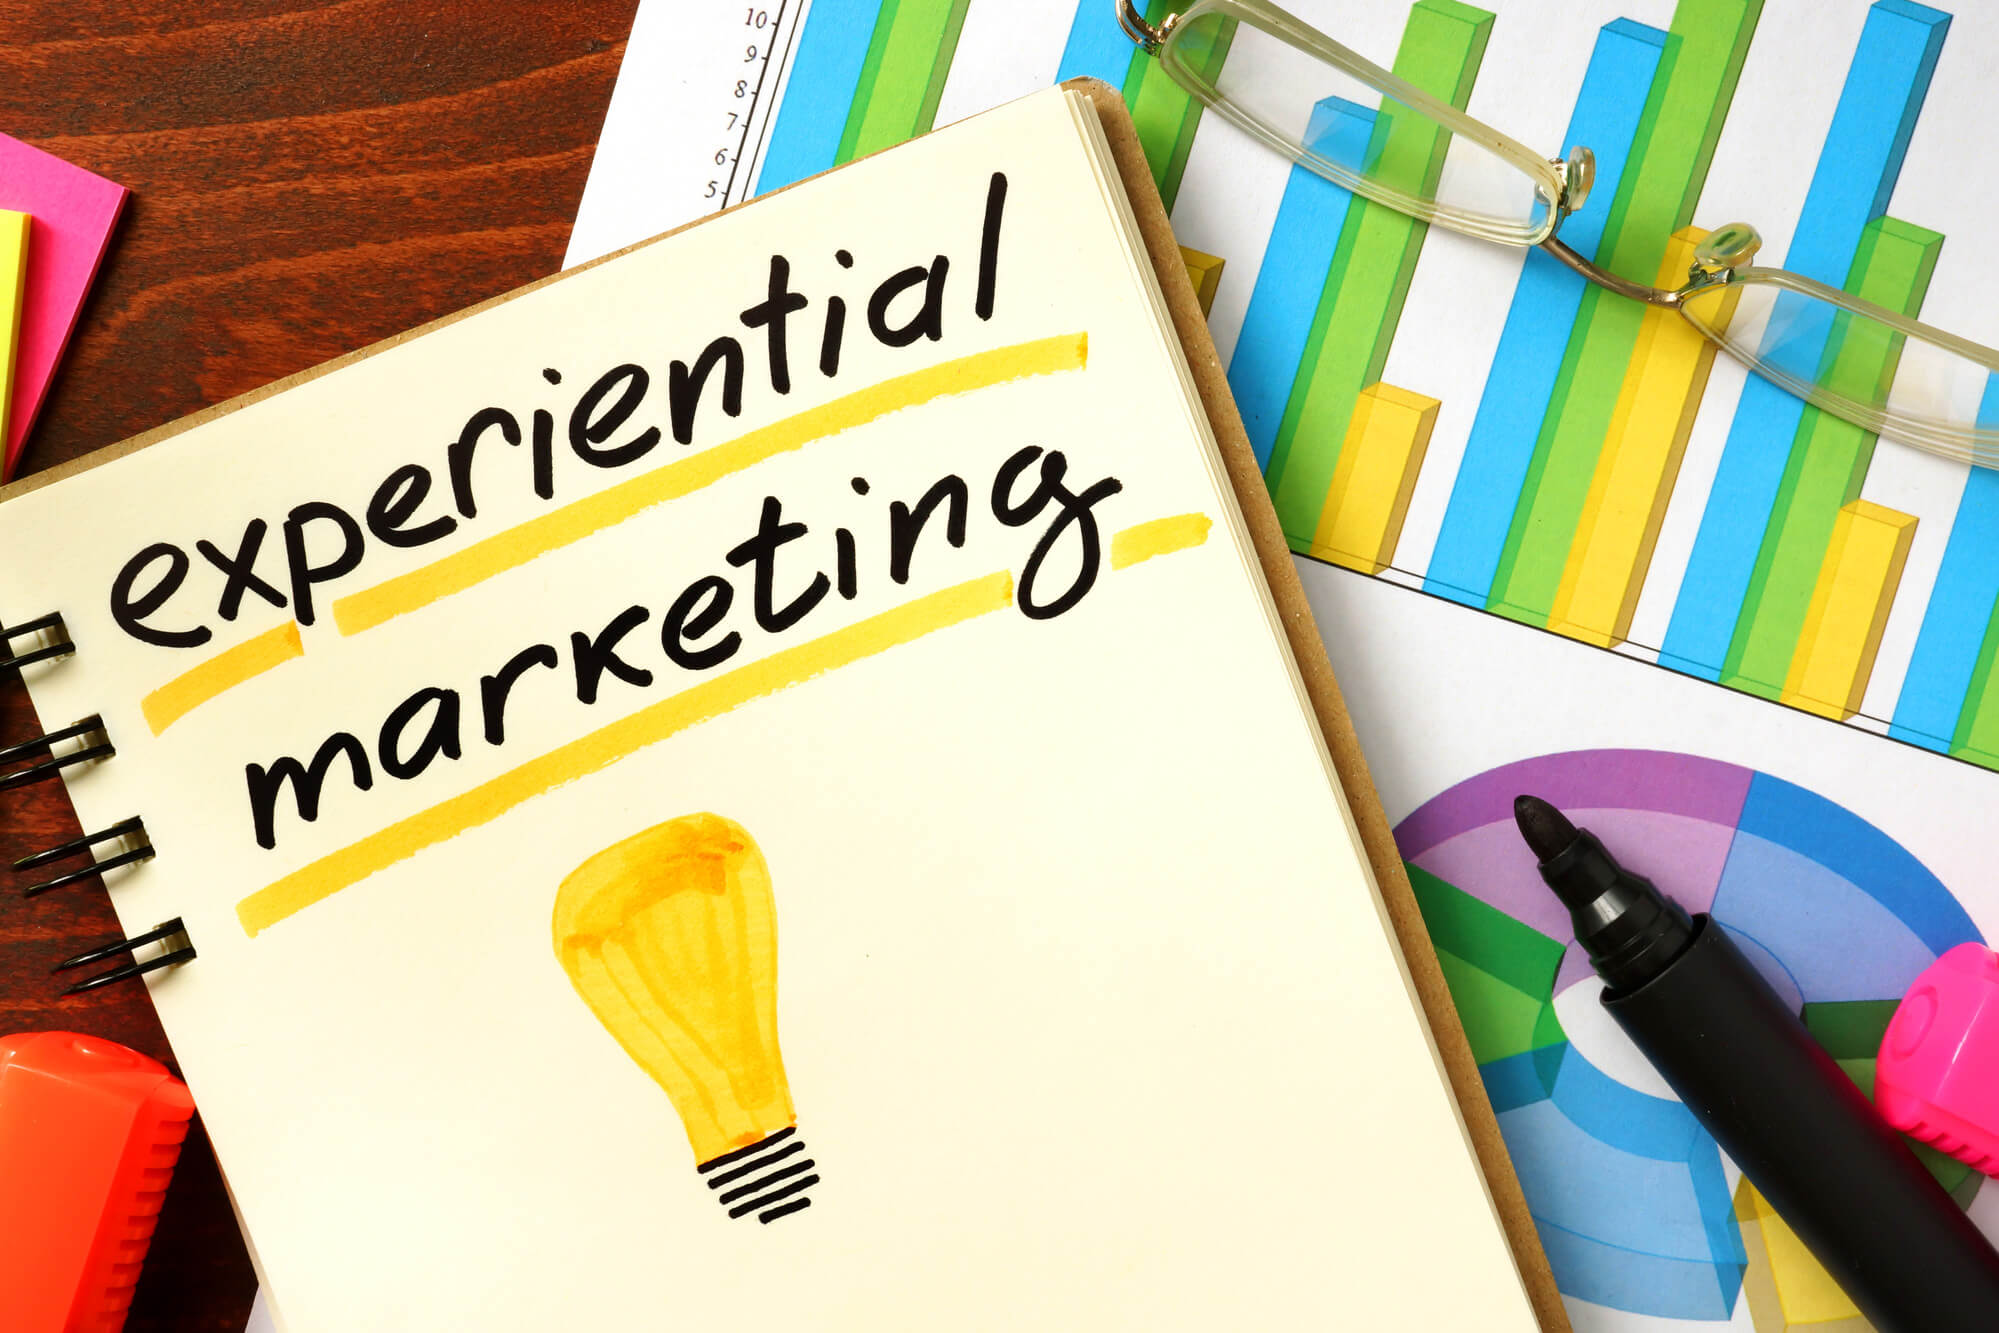 Experiential Marketing Strategies